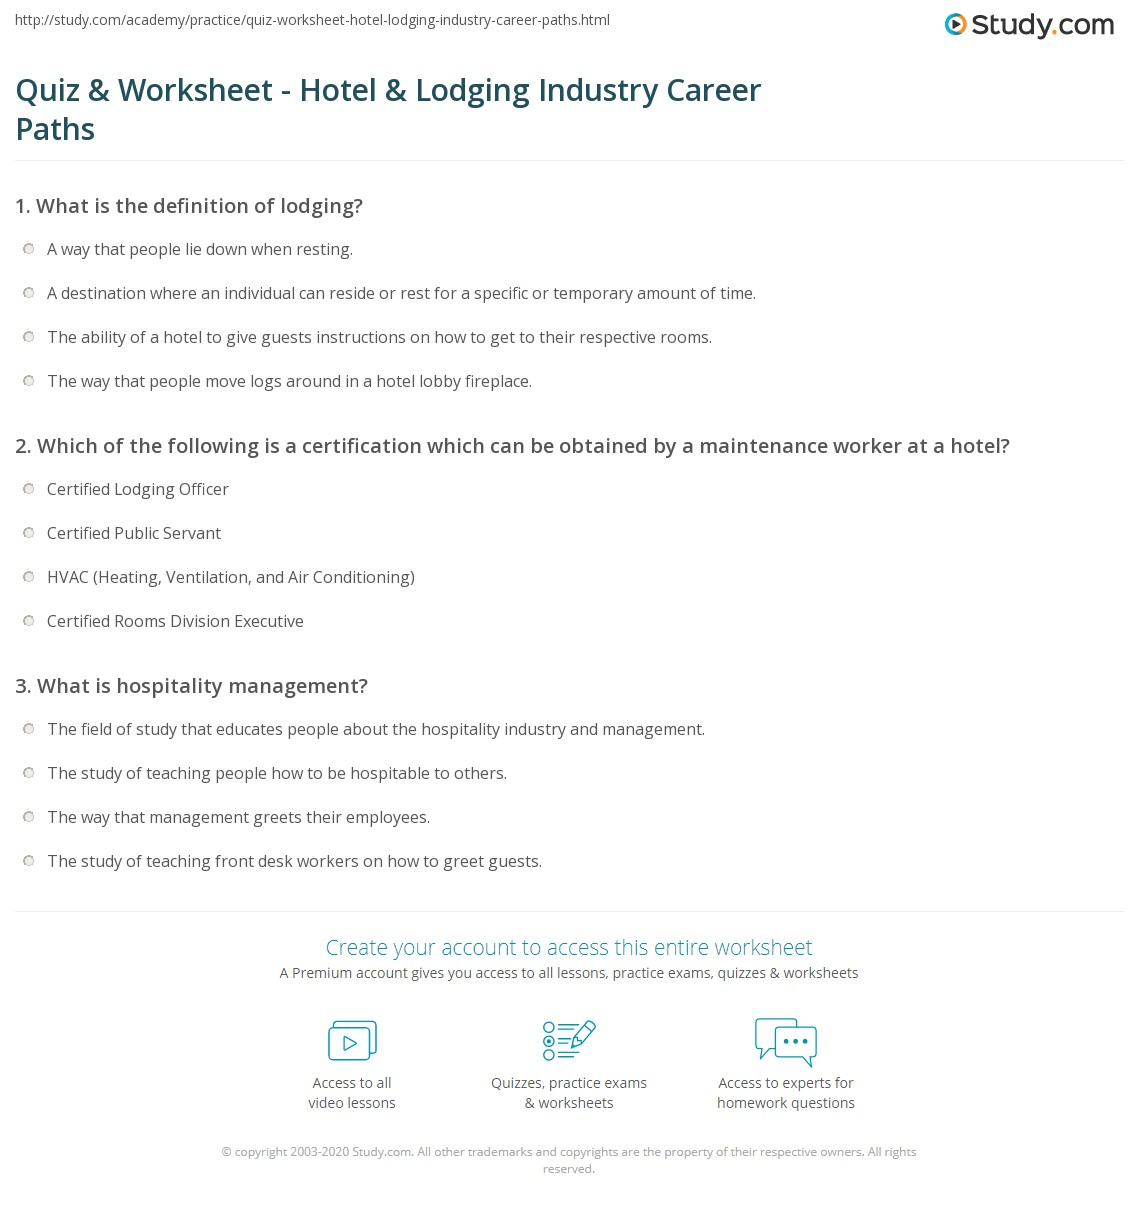 Quiz & Worksheet - Hotel & Lodging Industry Career Paths